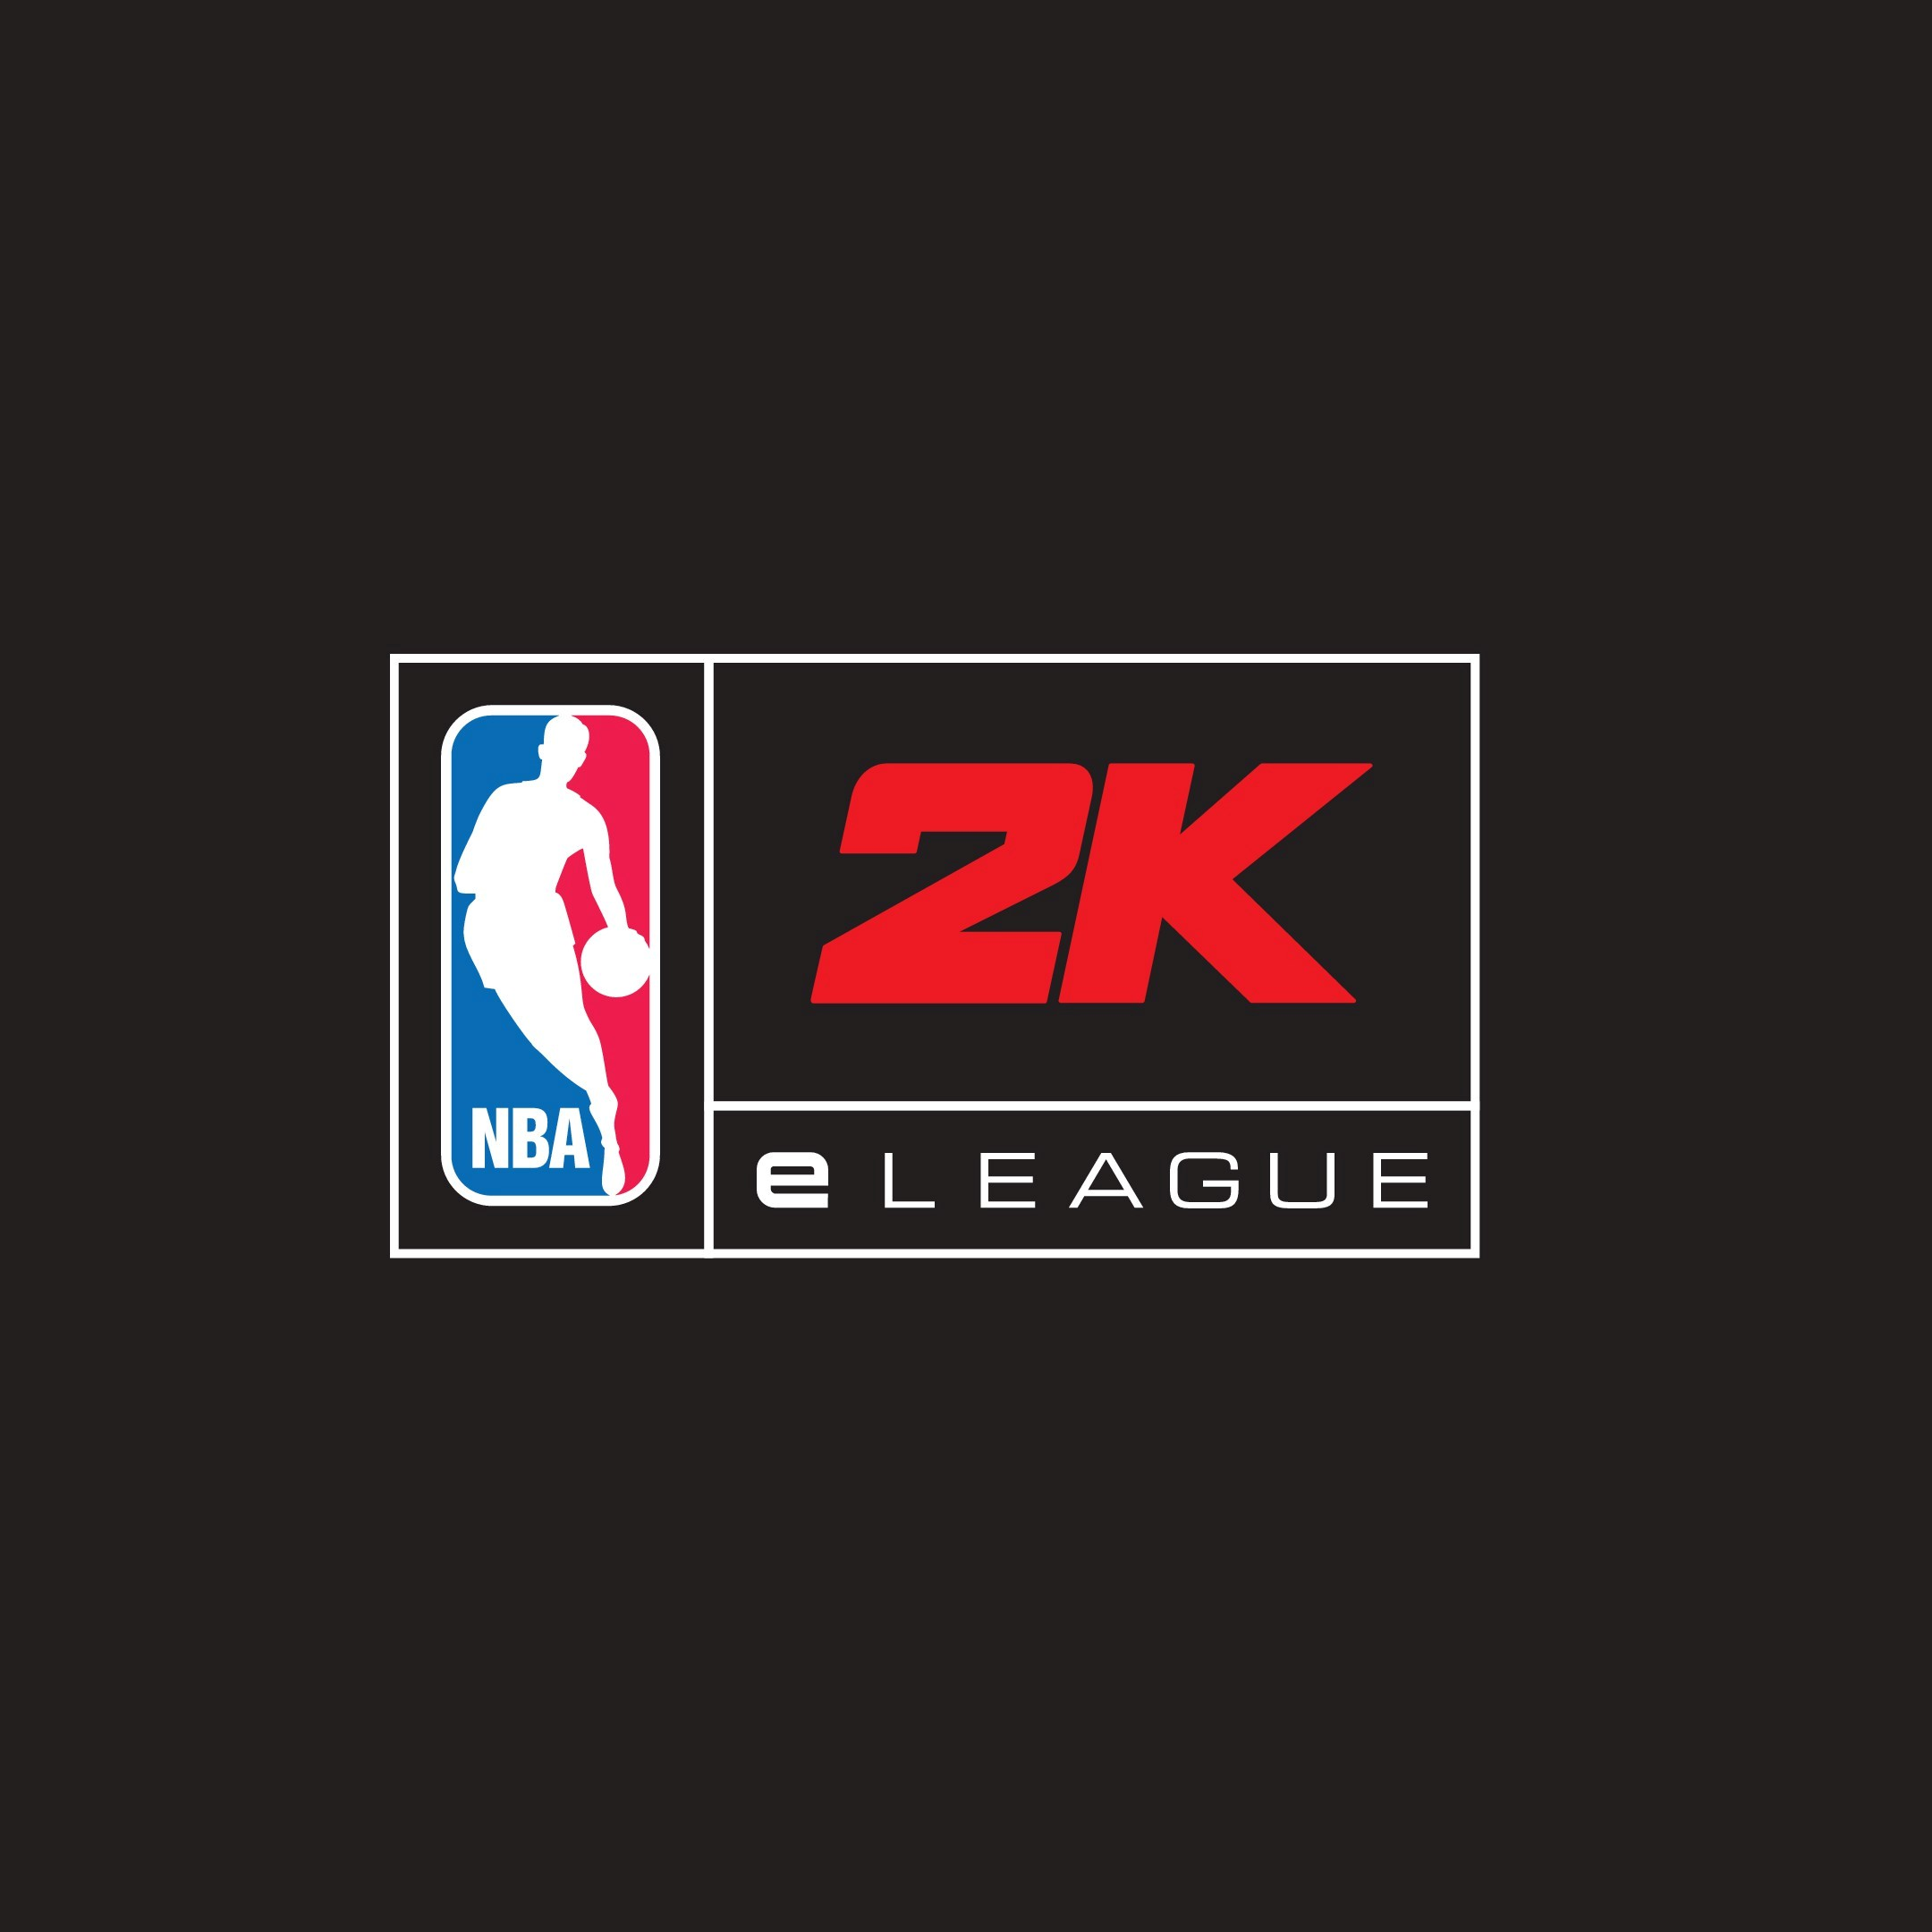 NBA 2K maker teaming up with NBA for esports league - Polygon